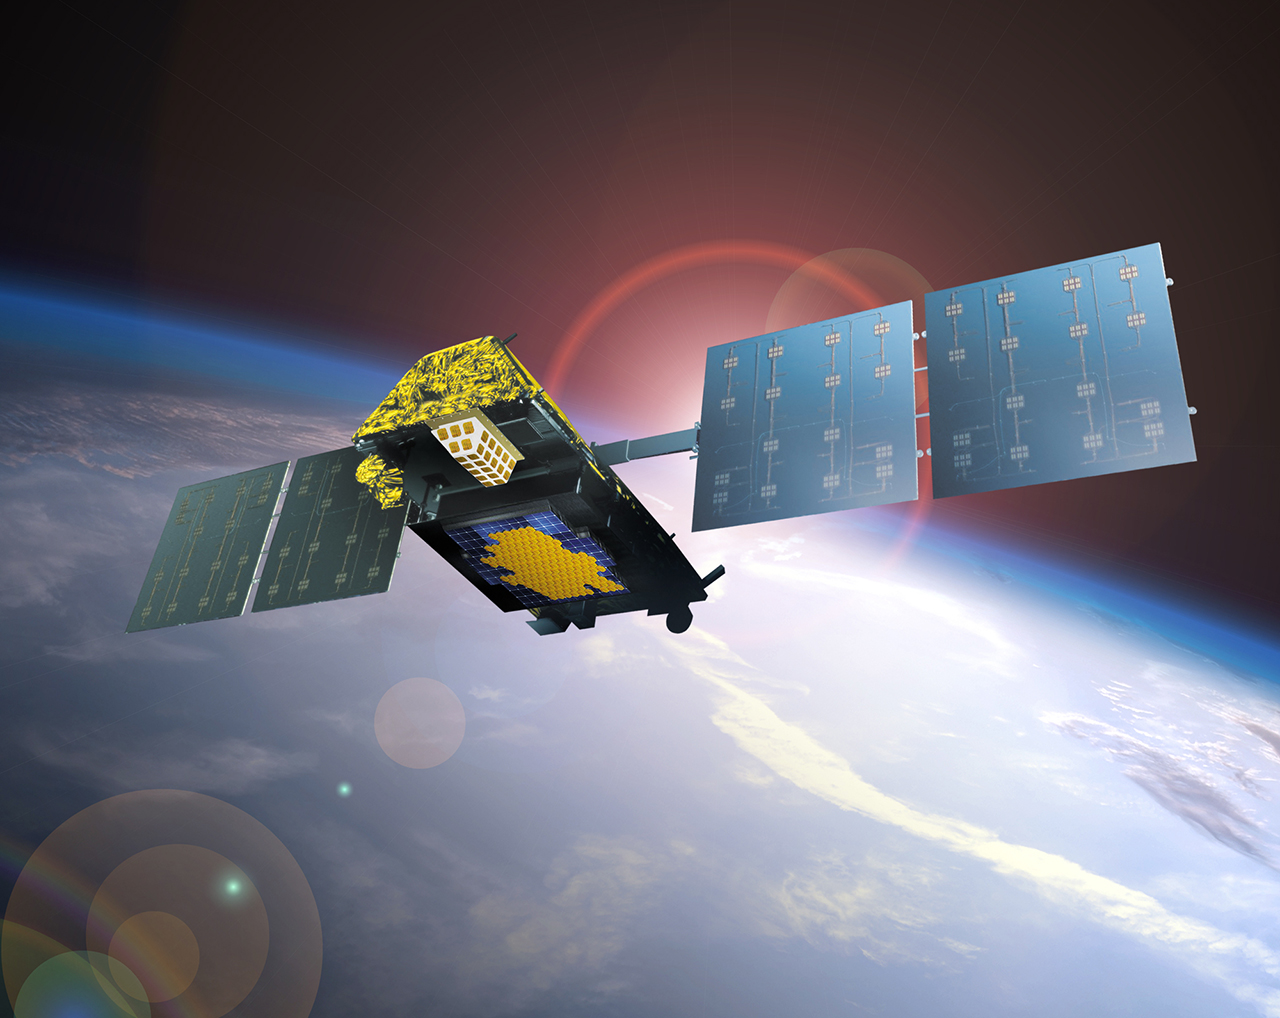 Iridium wins contract to develop hosted payload for Low Earth Orbit